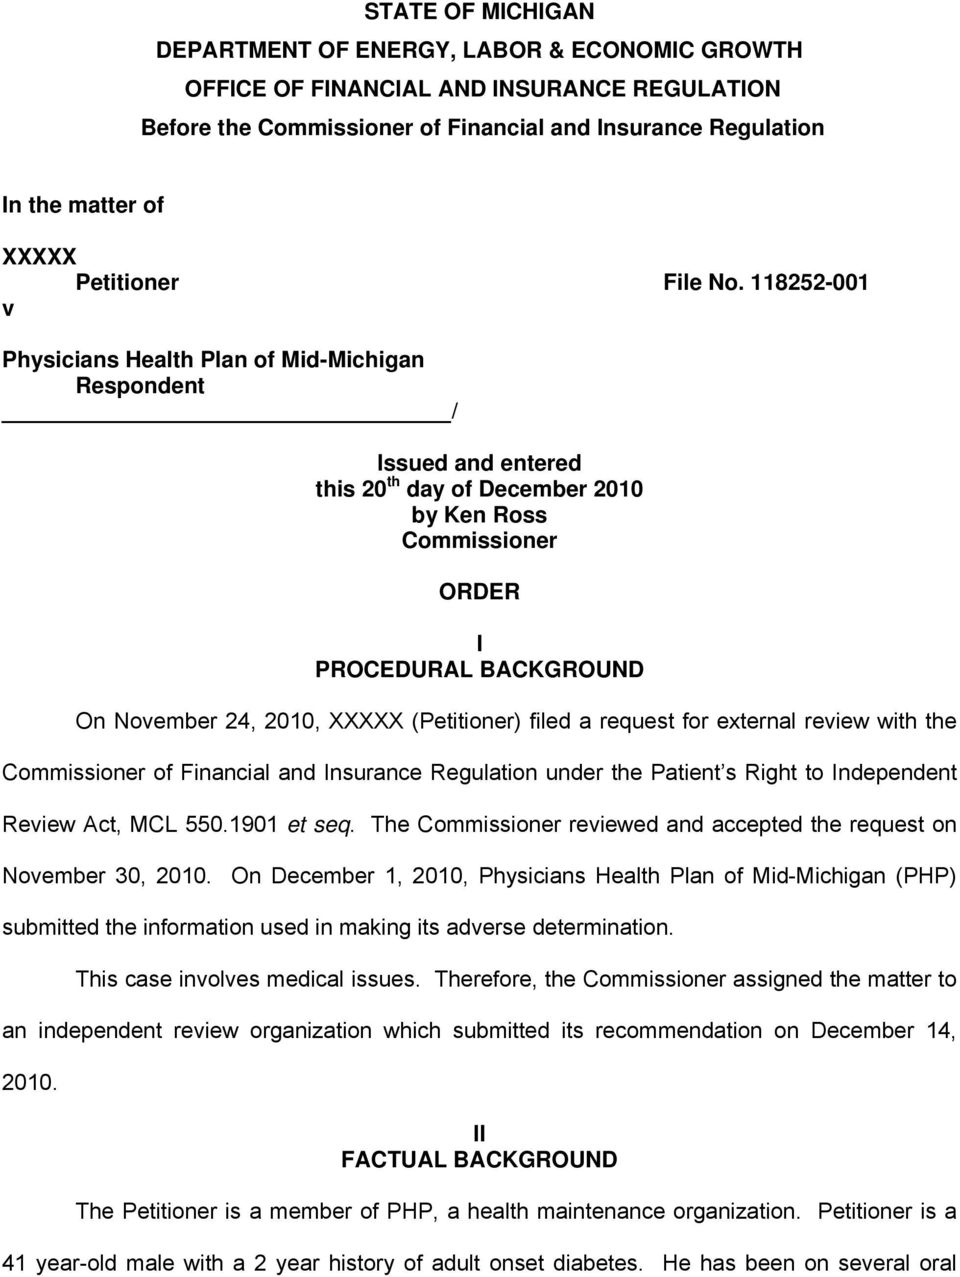 118252-001 v Physicians Health Plan of Mid-Michigan Respondent / Issued and entered this 20 th day of December 2010 by Ken Ross Commissioner ORDER I PROCEDURAL BACKGROUND On November 24, 2010, XXXXX